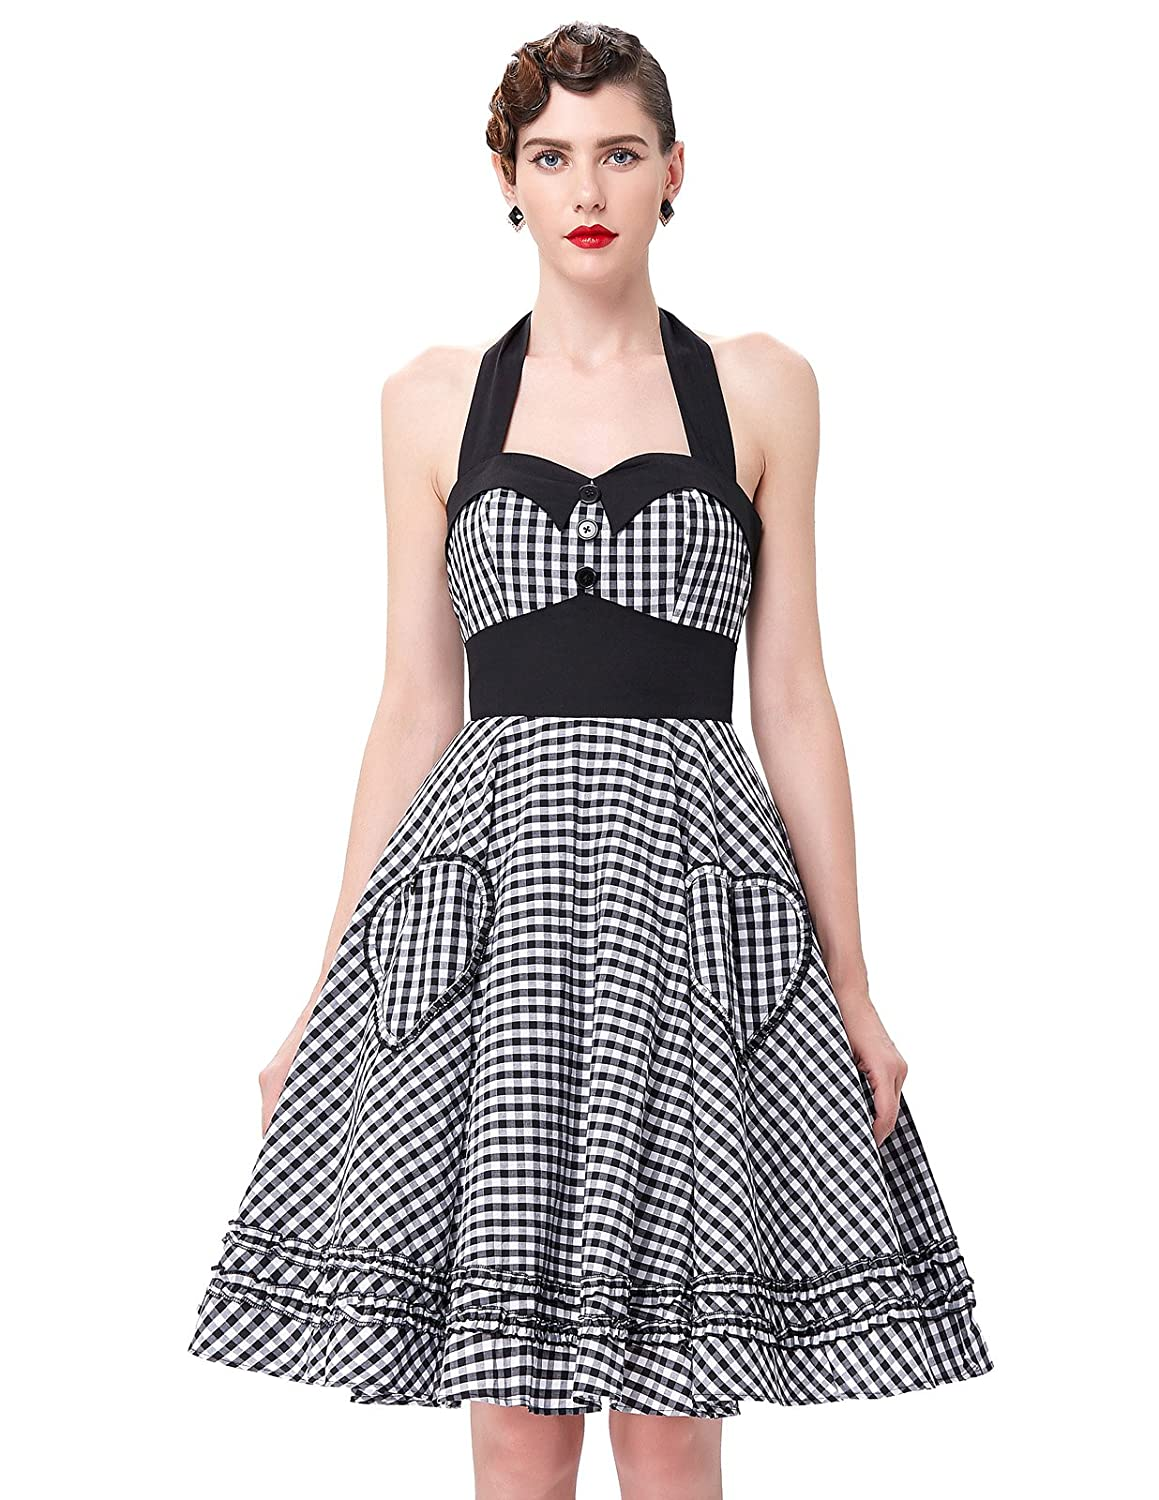 1940s Pinup Dresses for Sale Halter Neck Vintage Cocktail Dress JS6091 $28.99 AT vintagedancer.com